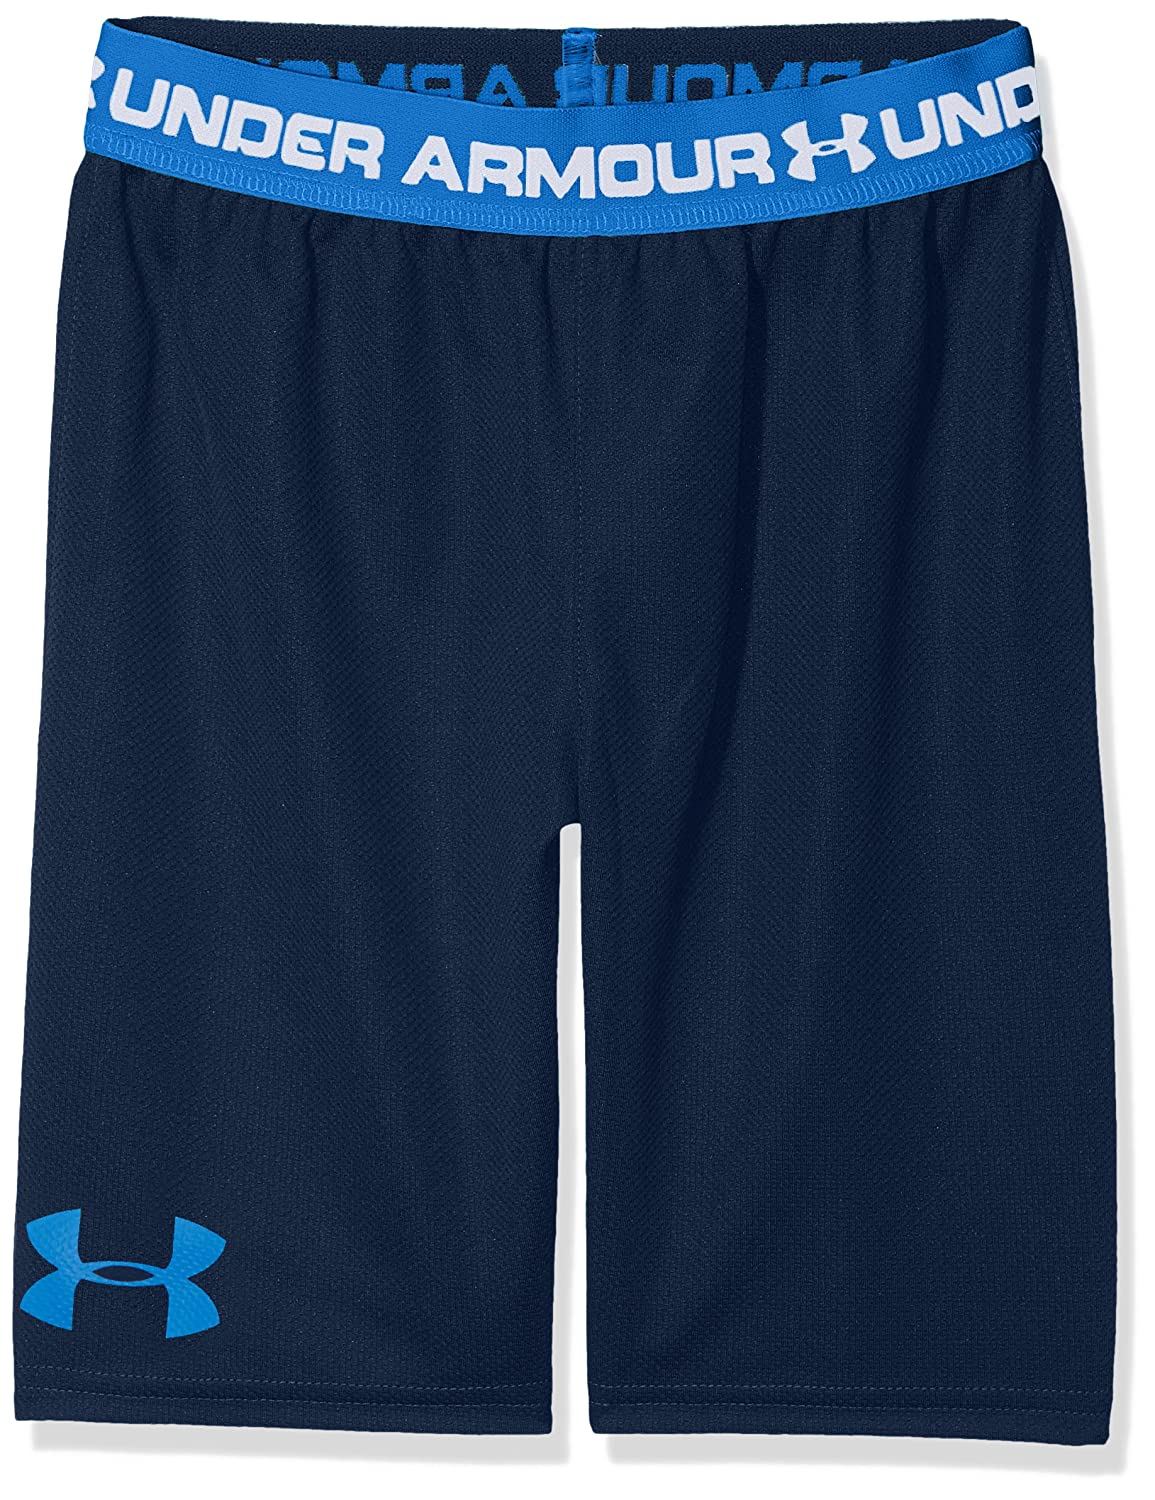 Under Armour Boys' Tech Prototype 2.0 Shorts Under Armour Apparel 1309310